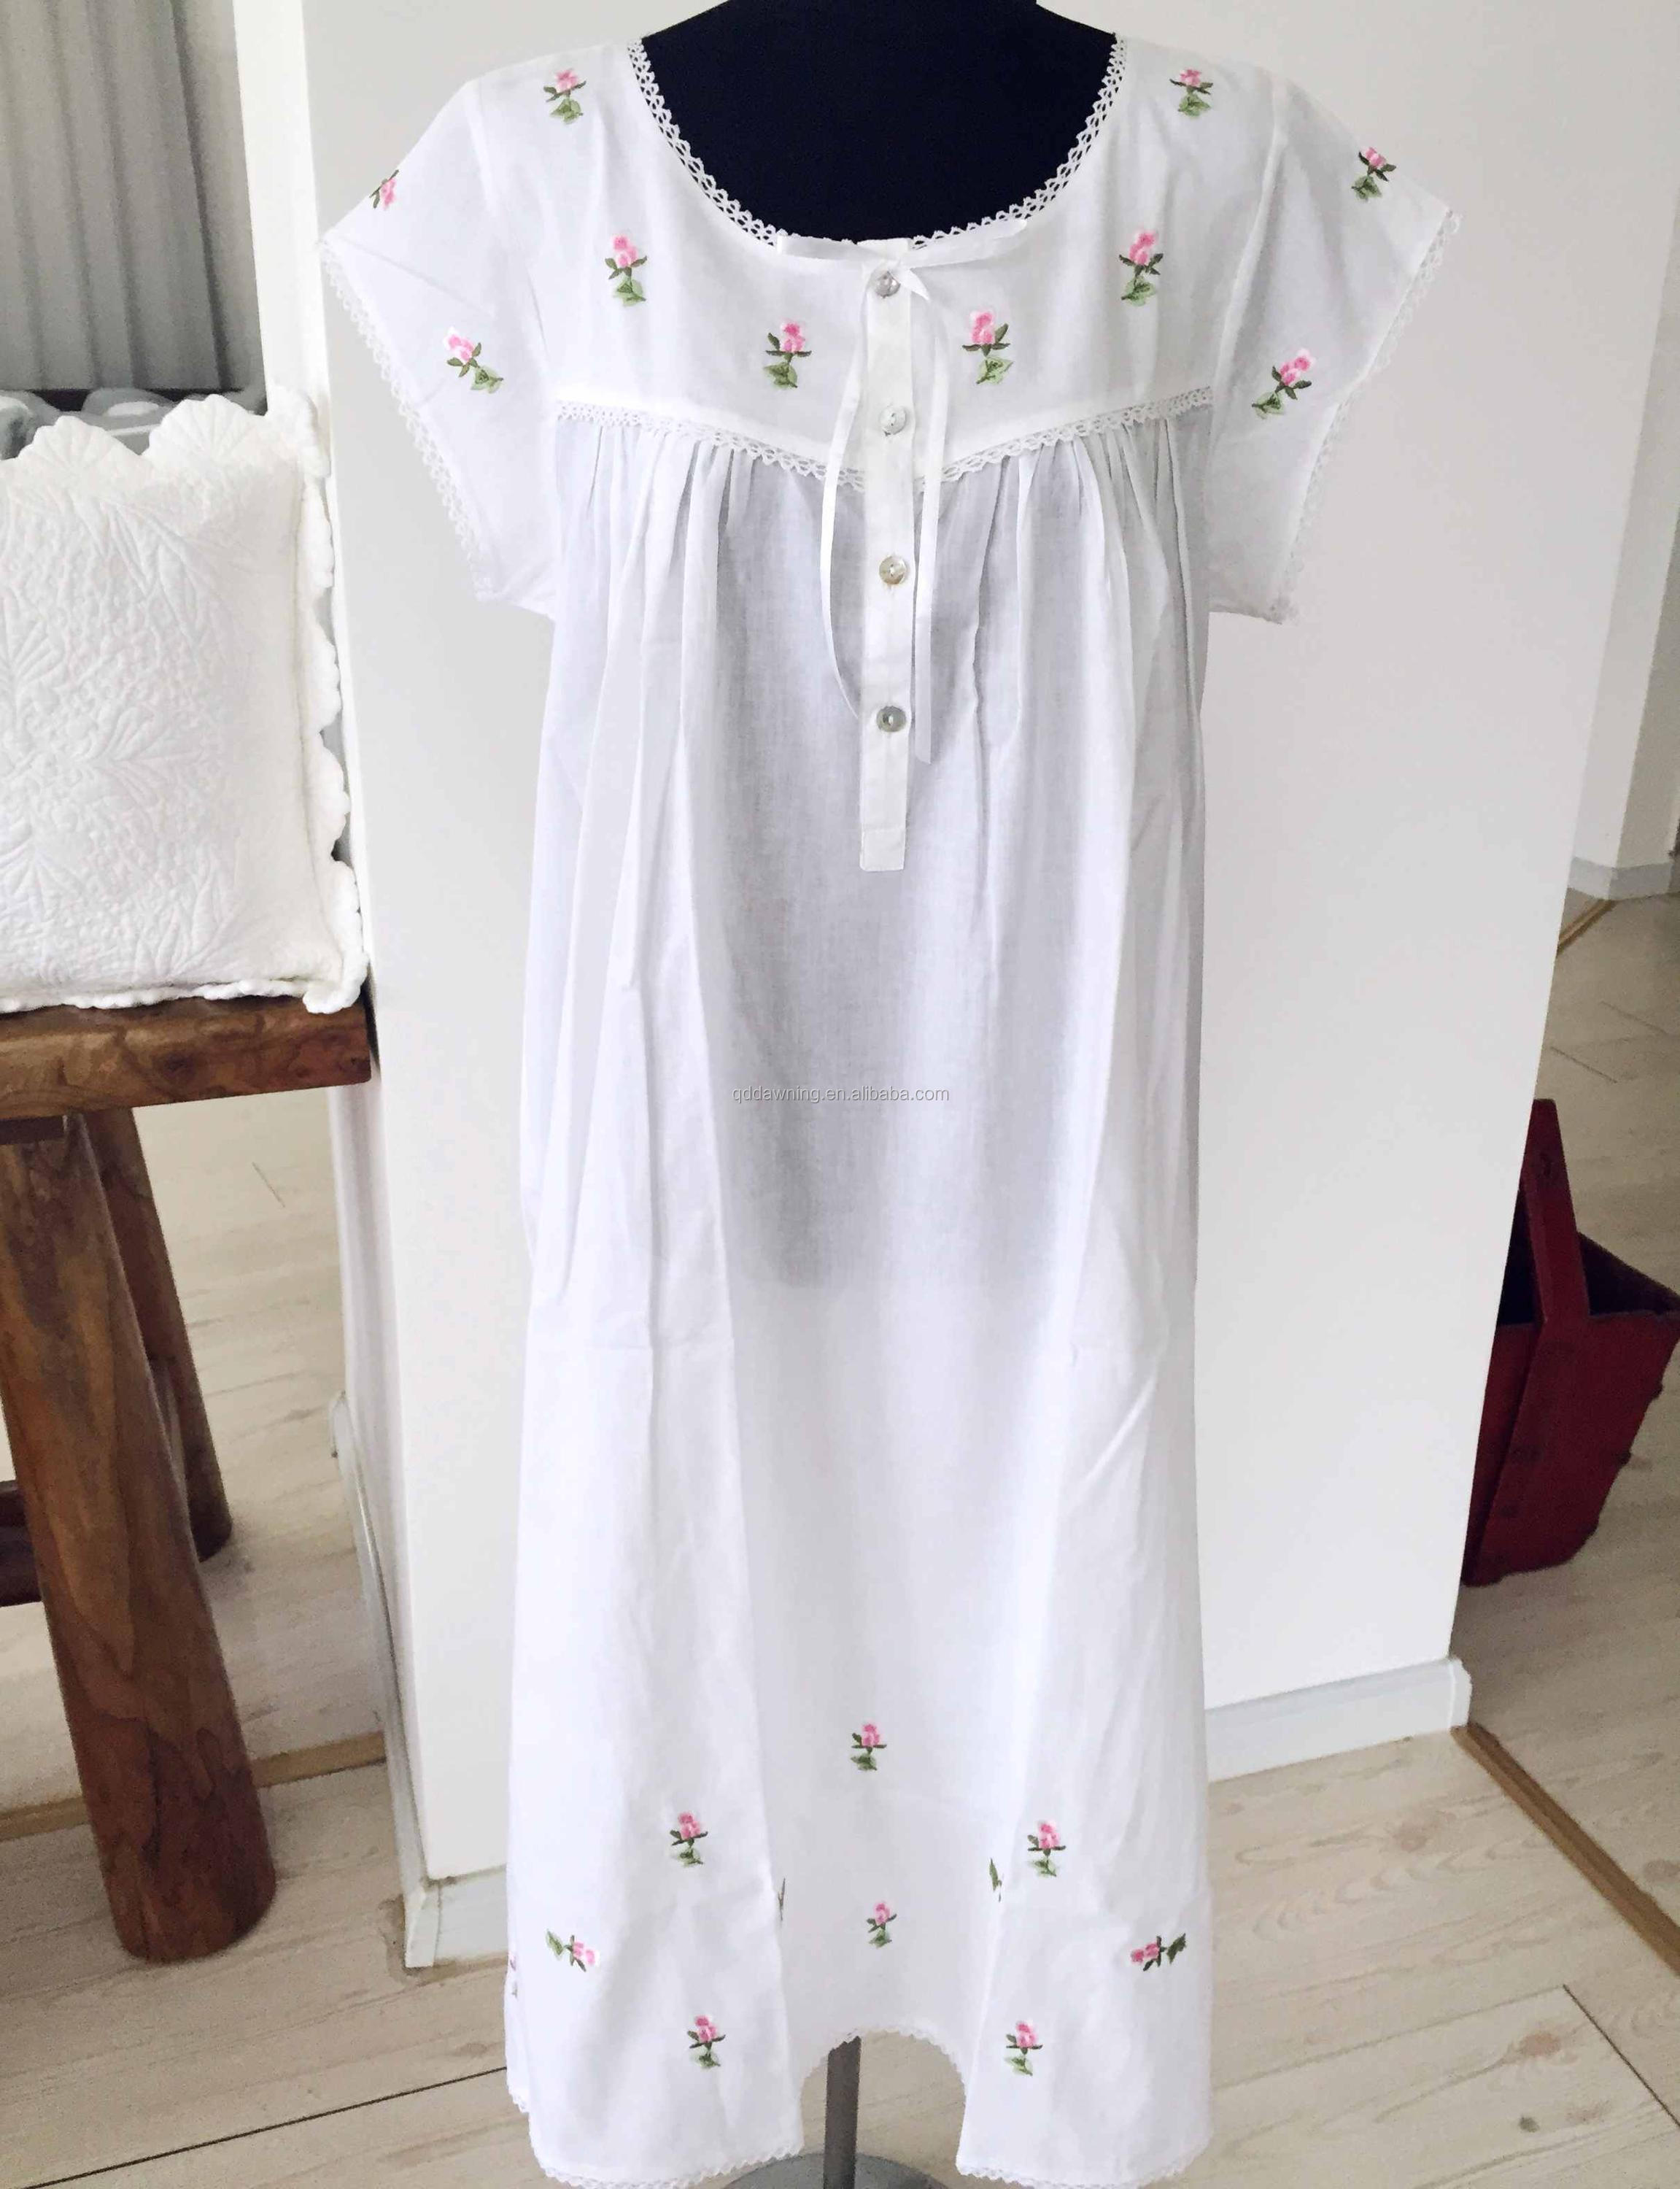 cb5abc4935 New Design White Cotton Nightgown Ladies In Nightdress - Buy Ladies ...